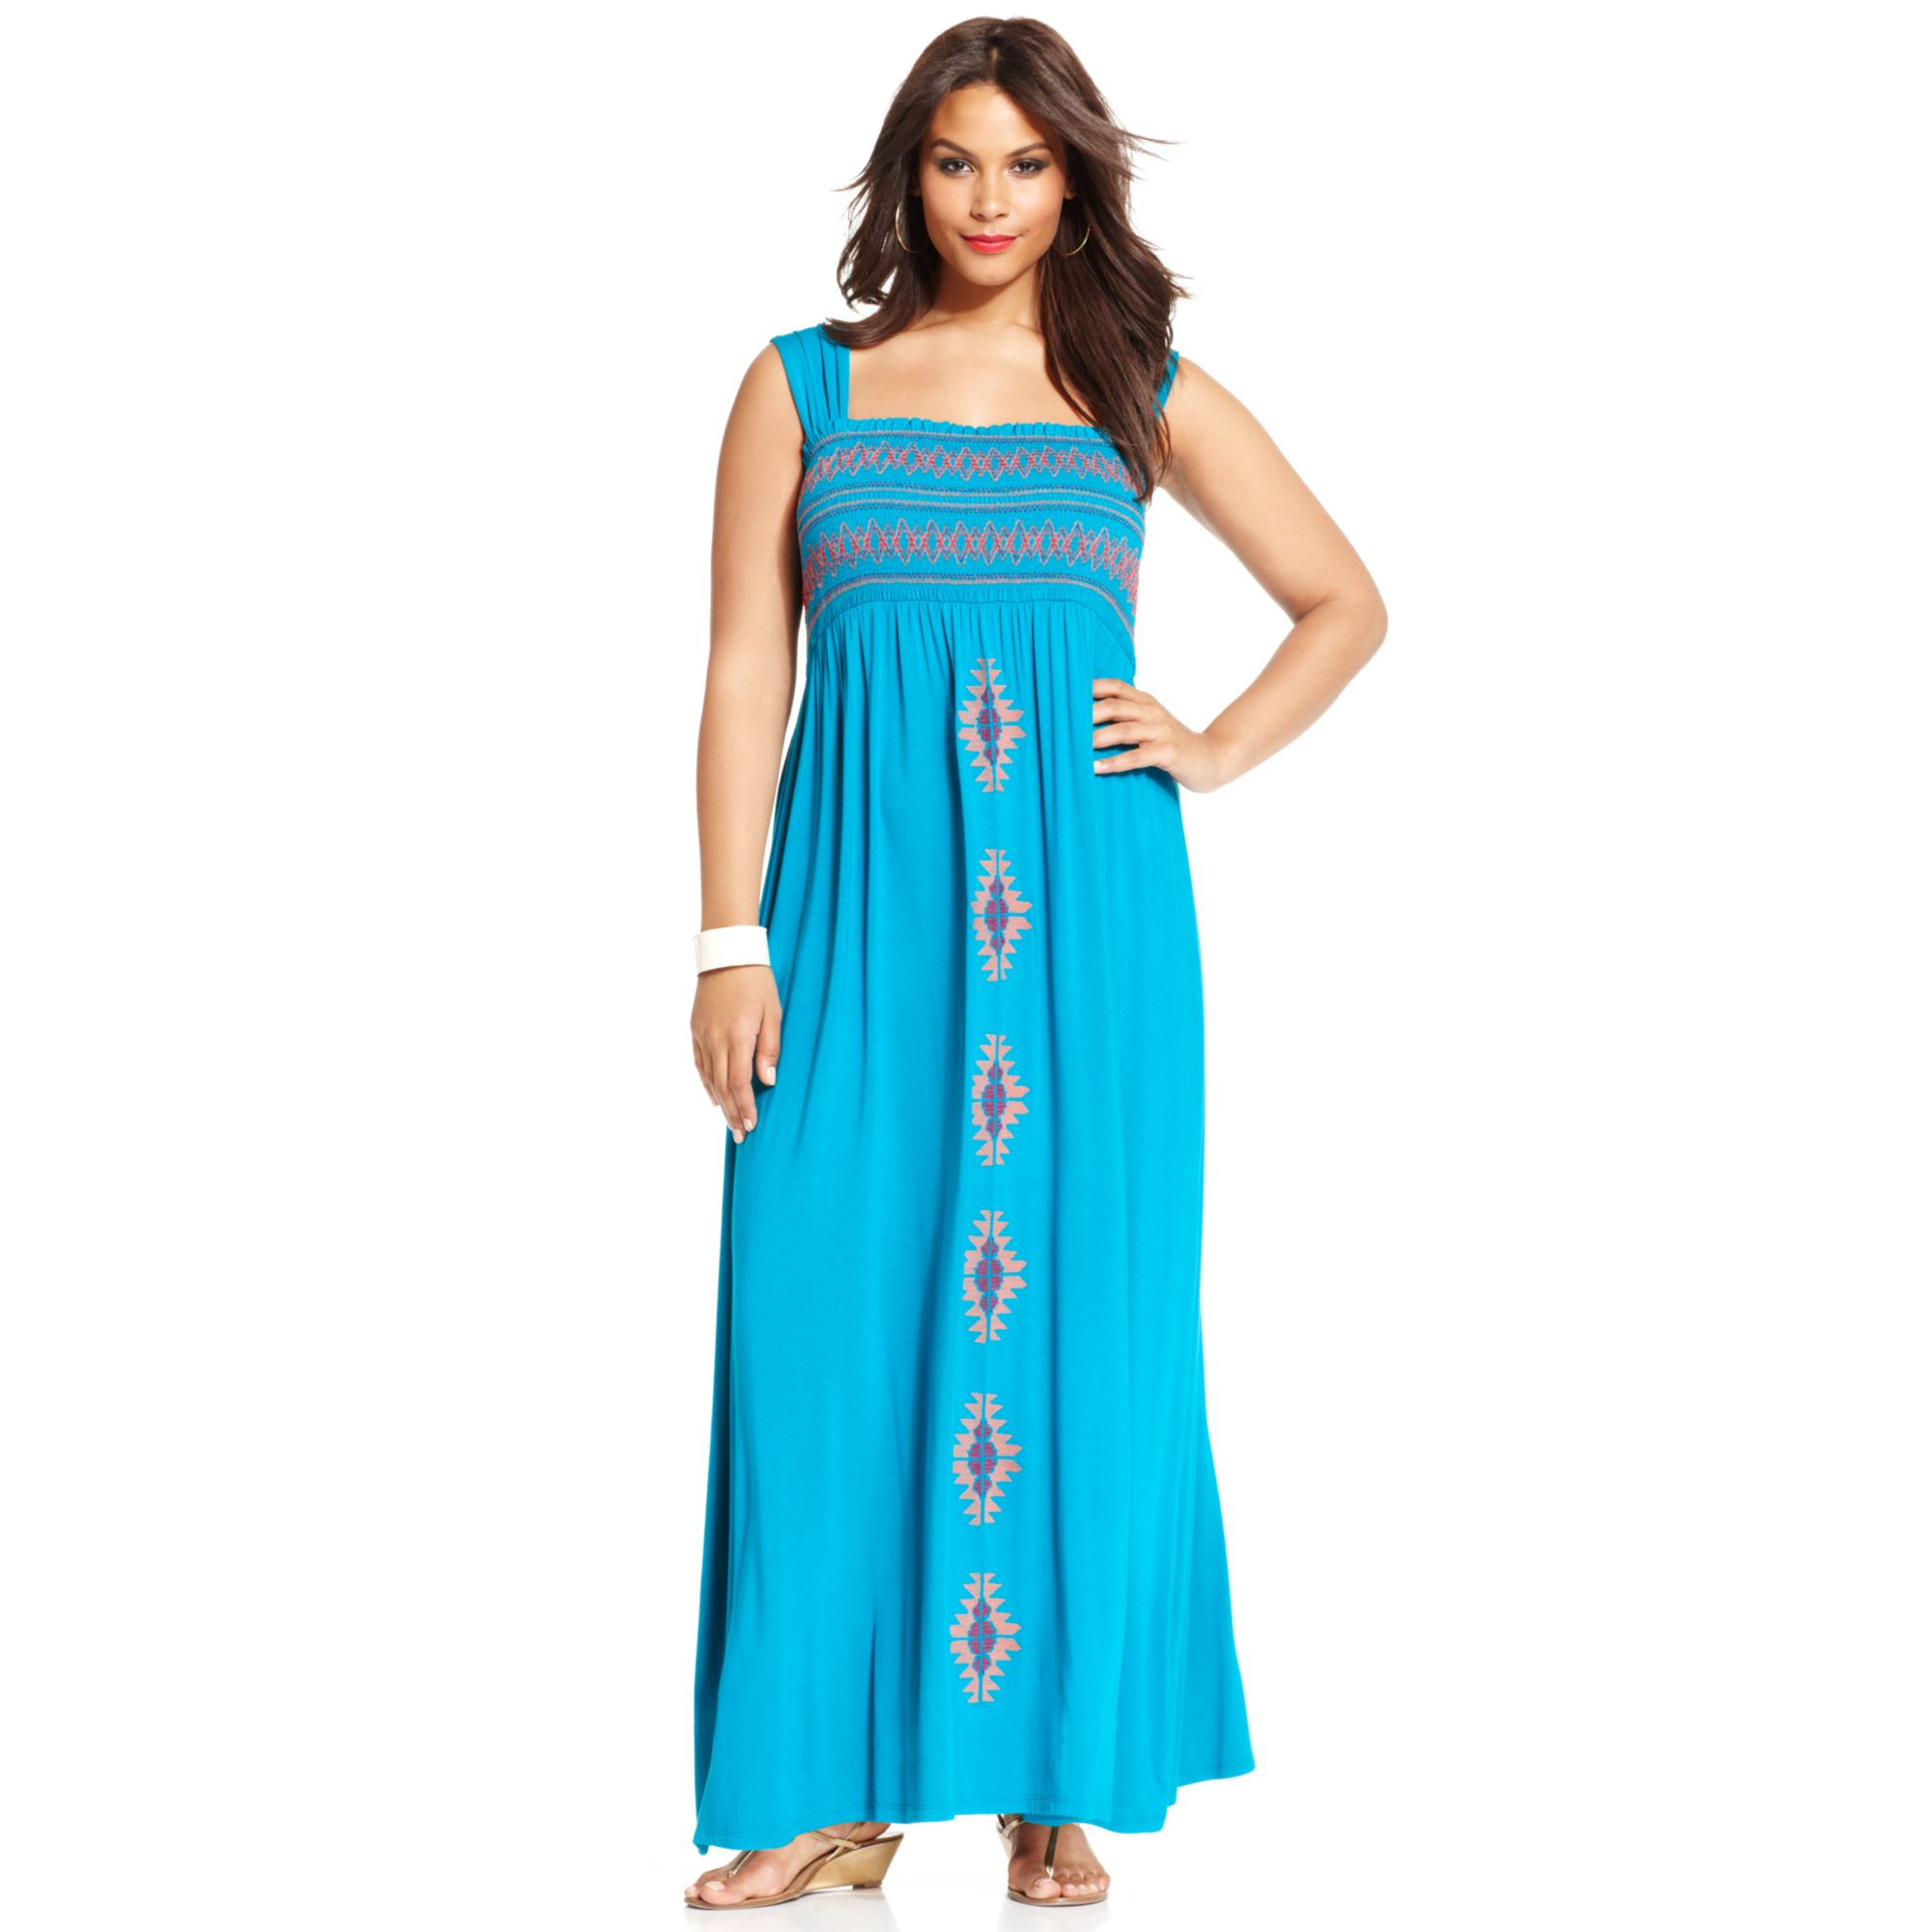 Spense Plus Size Embroidered Smocked Maxi Dress in Blue | Lyst